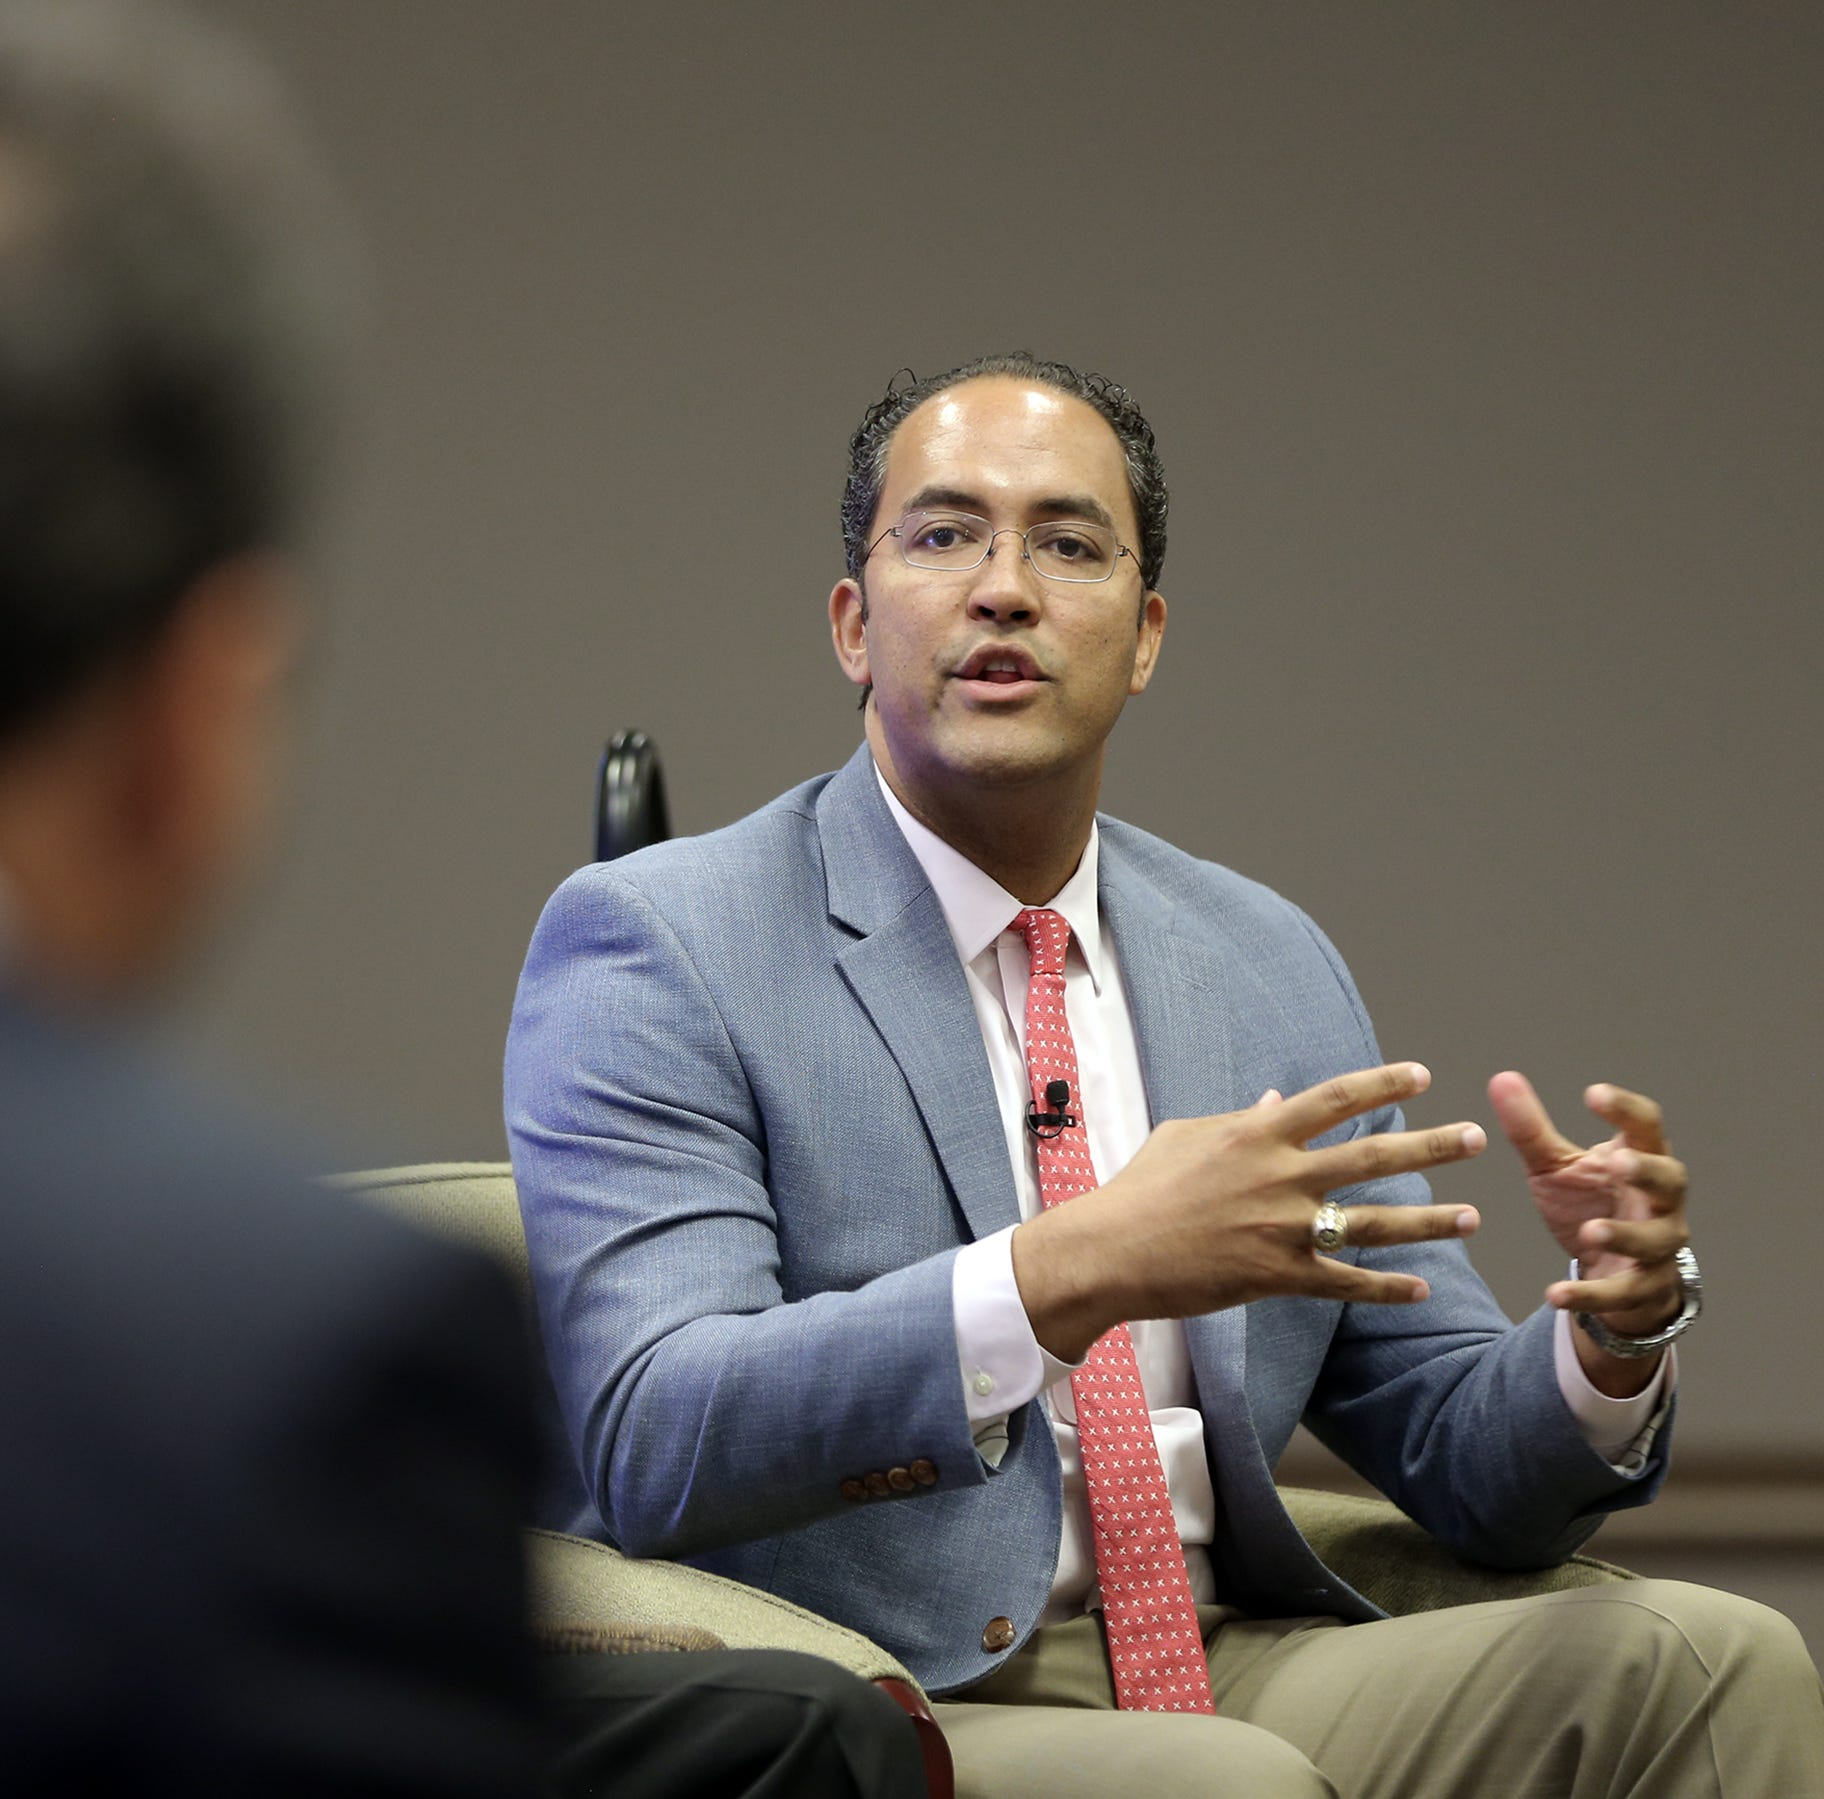 US Rep. Will Hurd's independent streak is right fit for 23rd district: Jorge Martinez